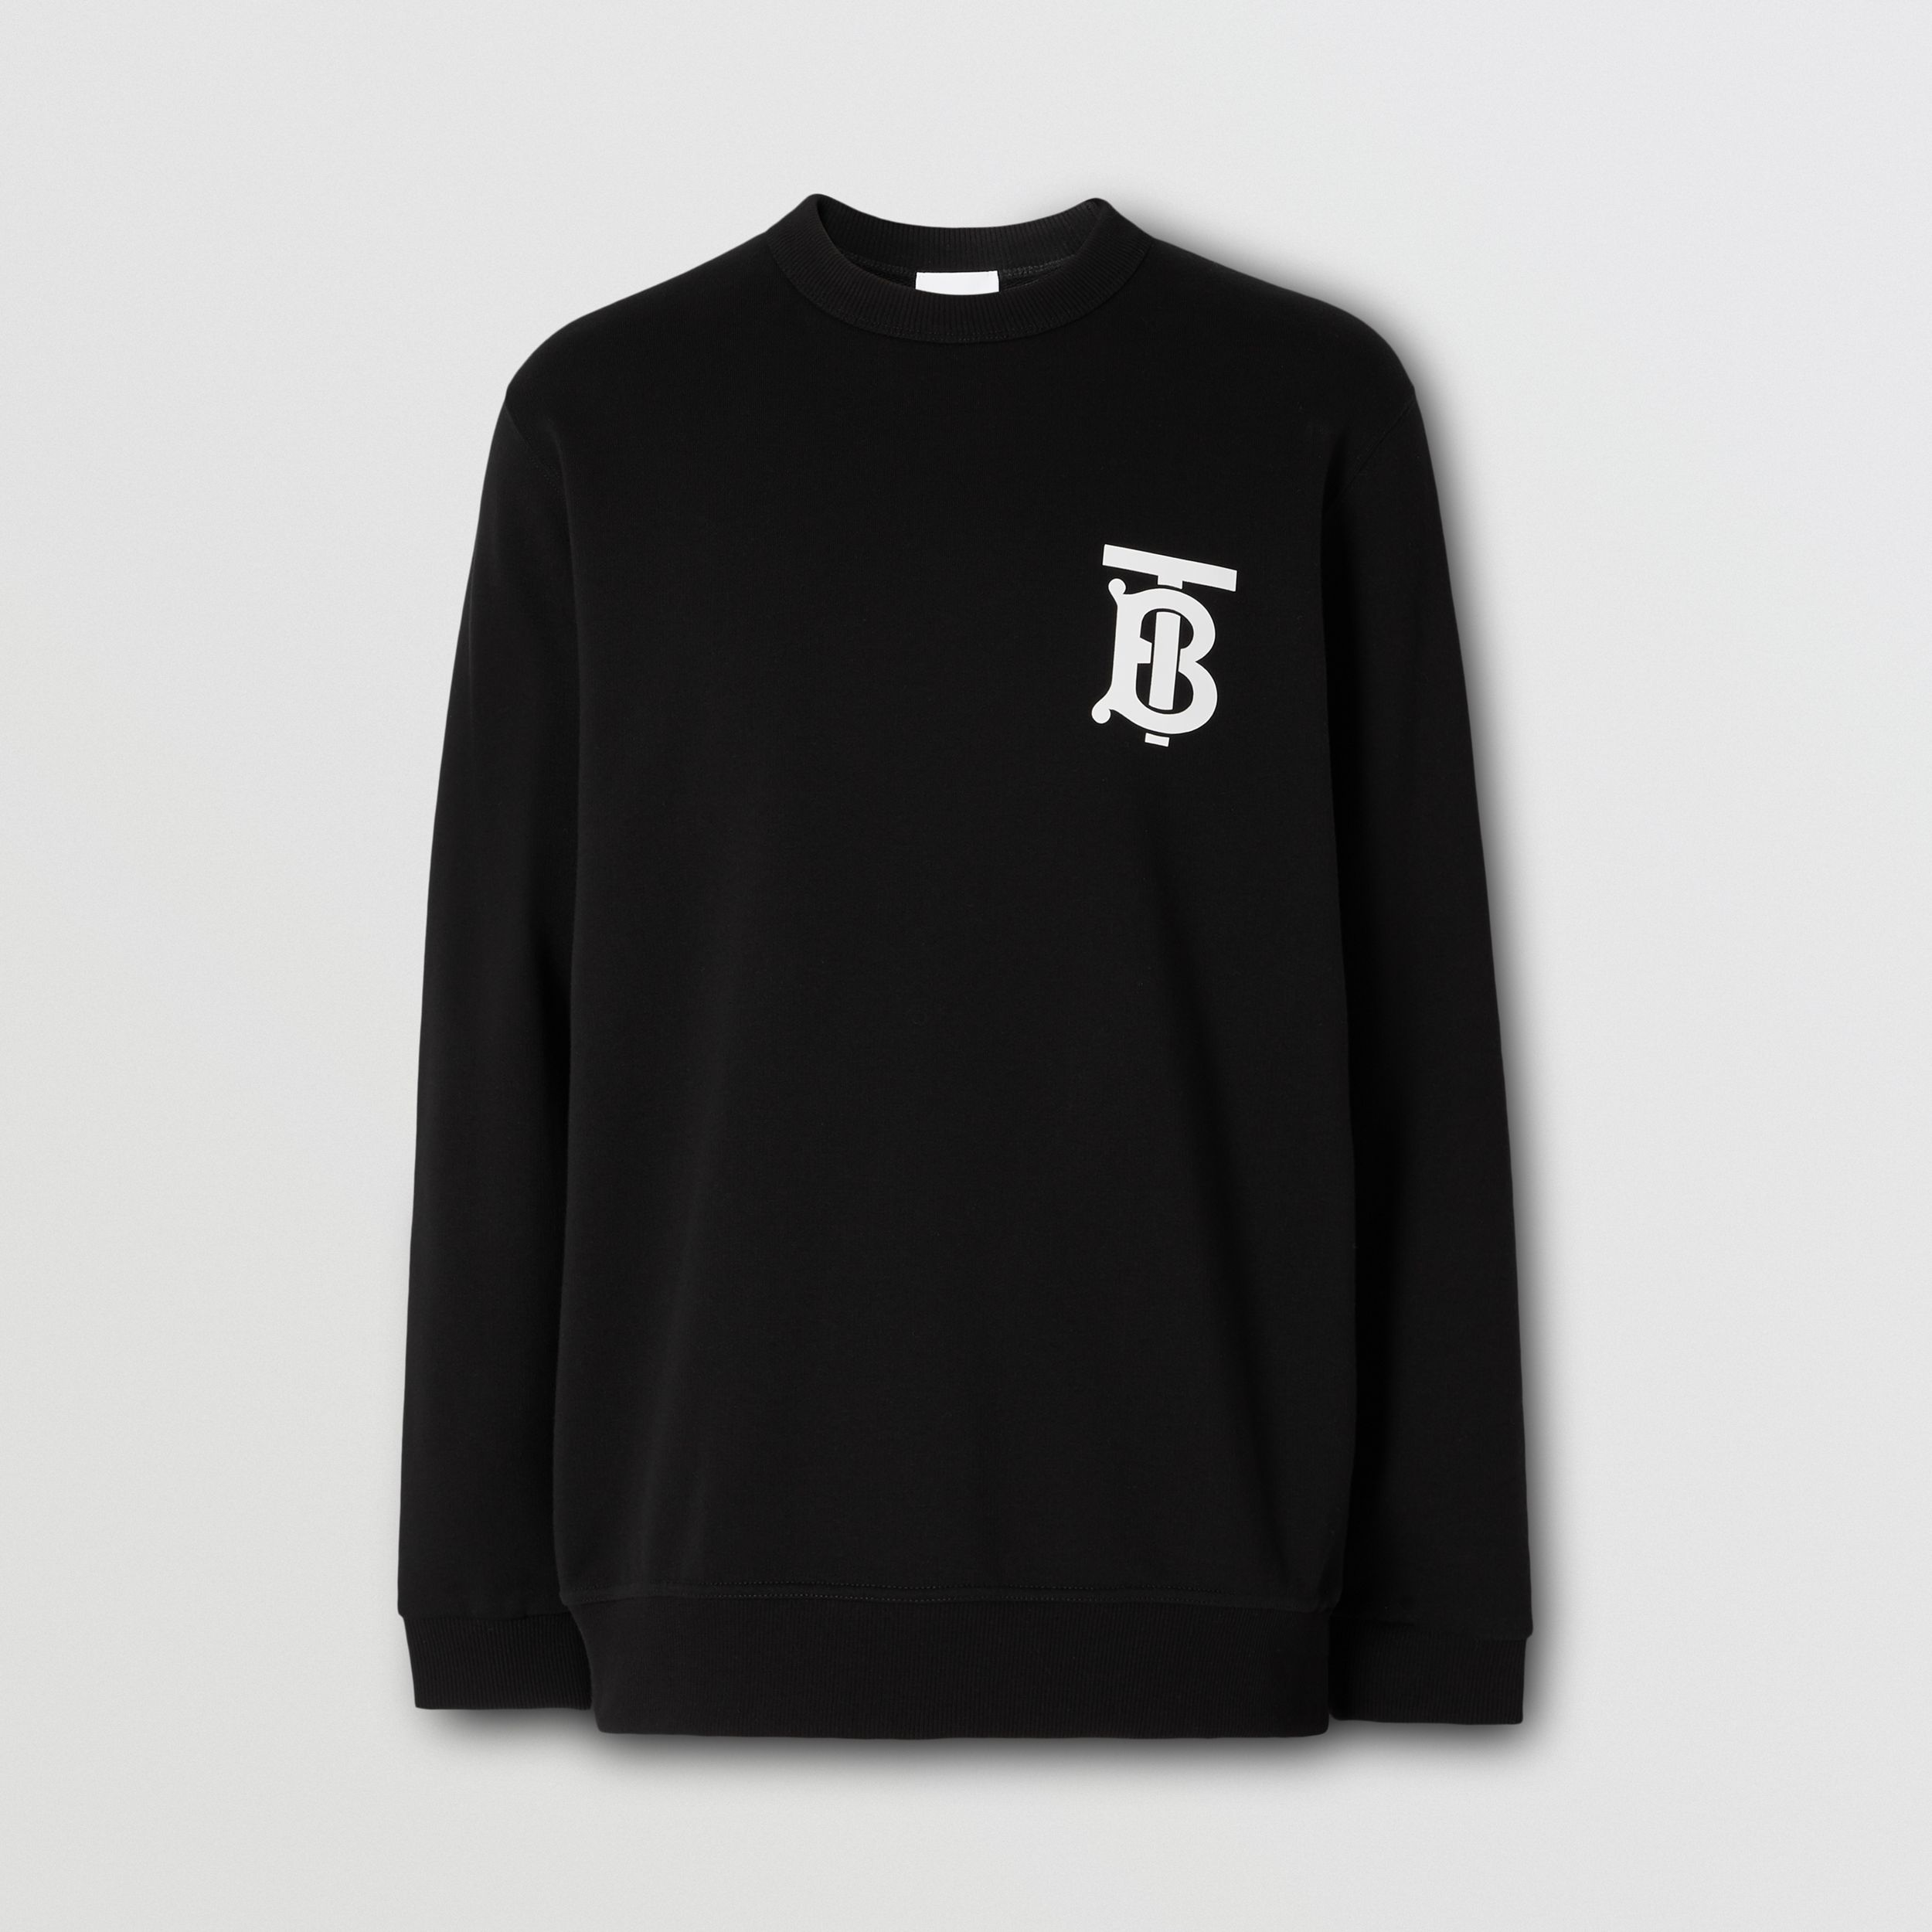 Monogram Motif Cotton Sweatshirt in Black - Men | Burberry Hong Kong S.A.R. - 4